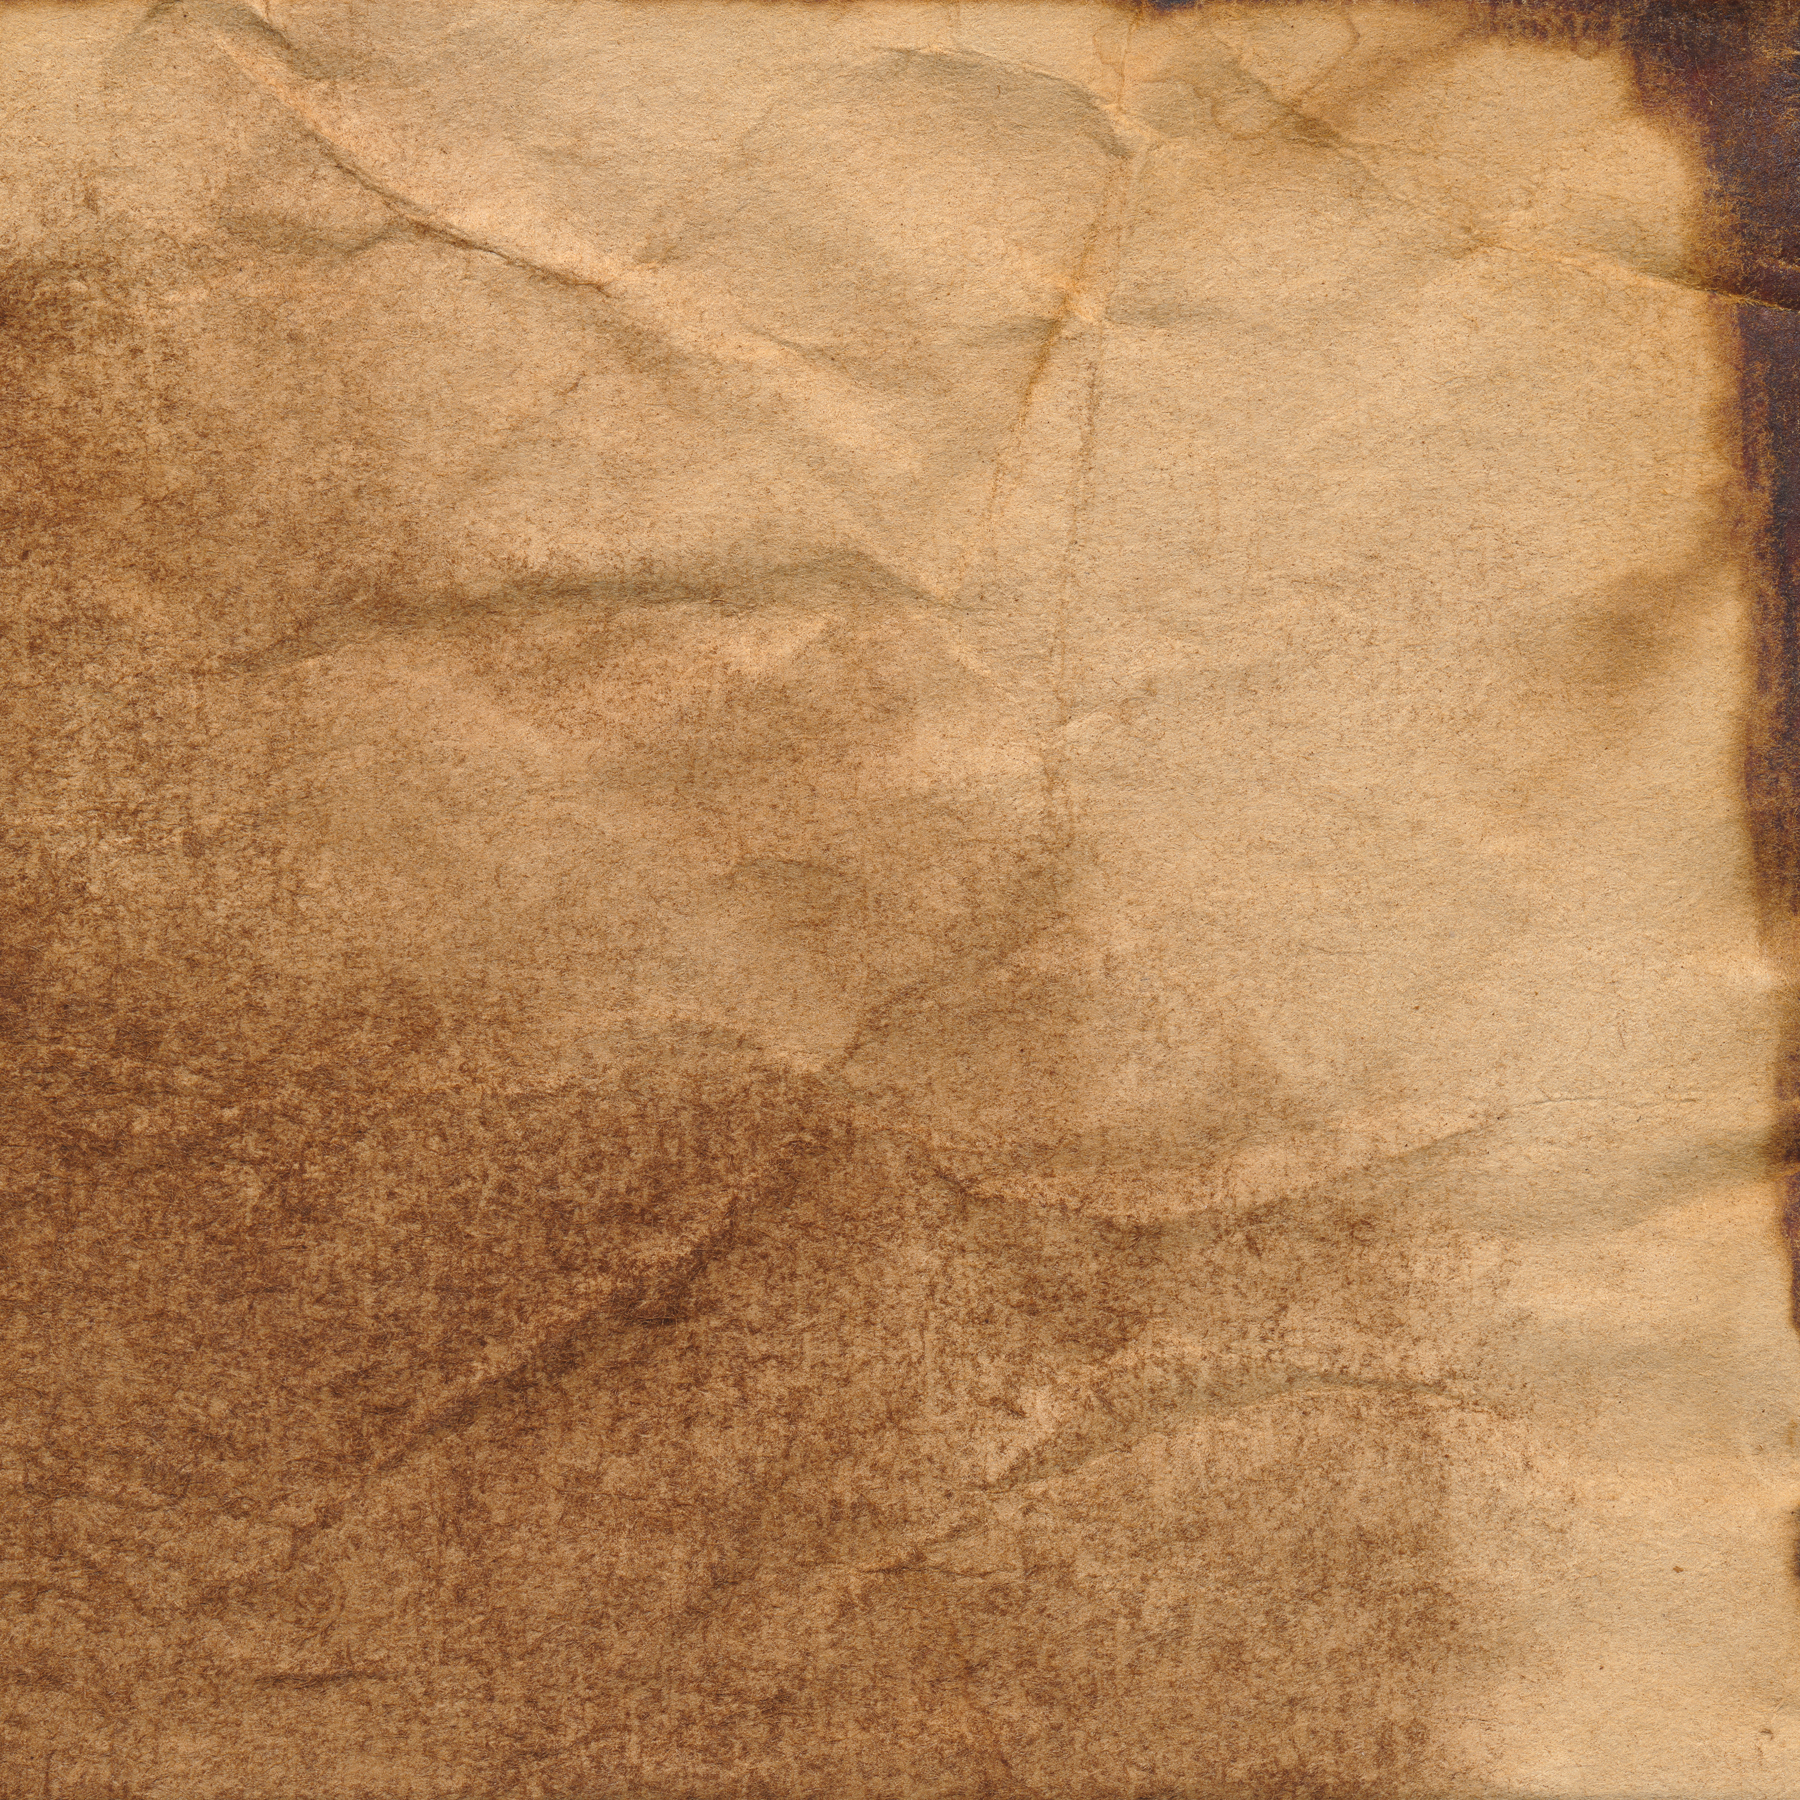 Coffee stained paper texture photo